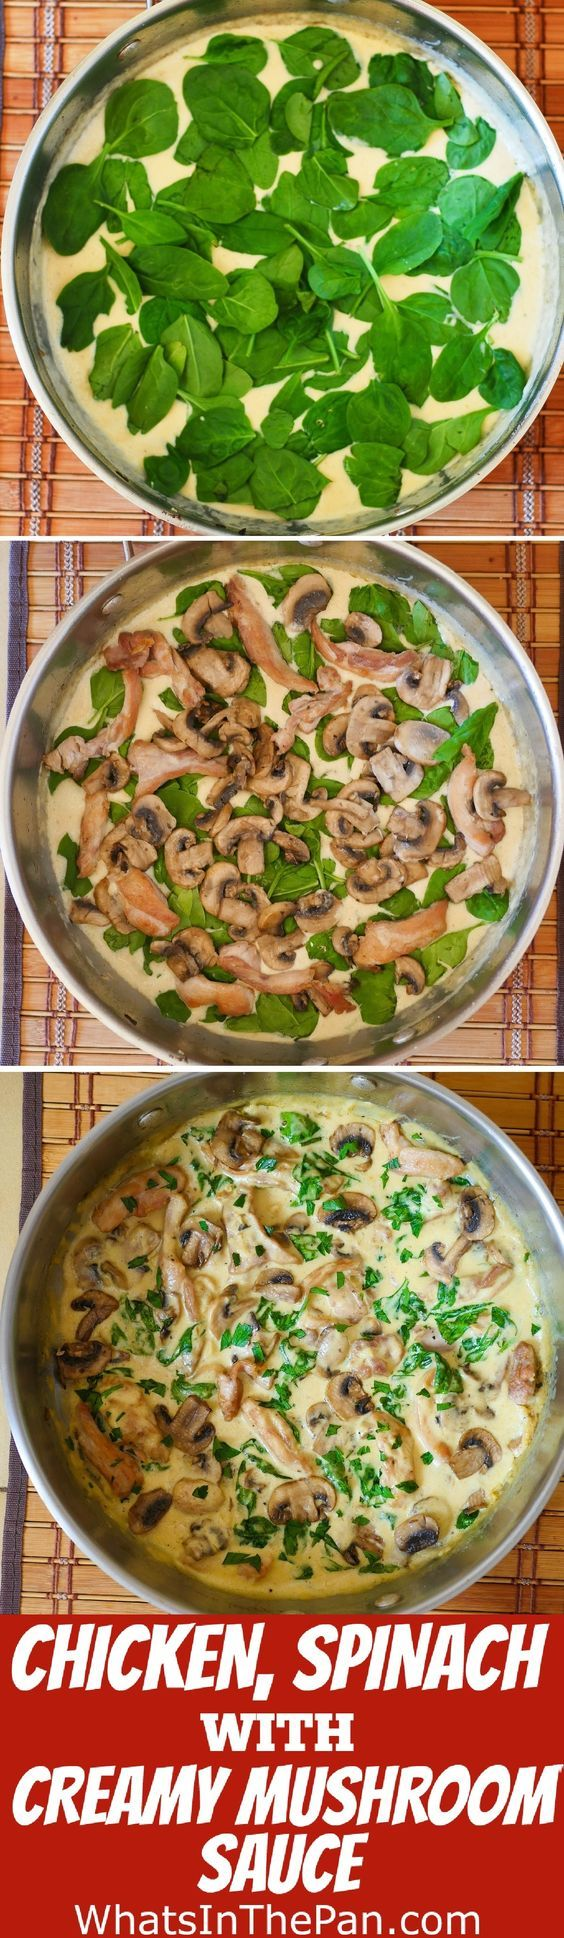 Chicken and Spinach in Creamy Mushroom Sauce - easy weeknight dinner recipe.(Paleo Soup Spinach)